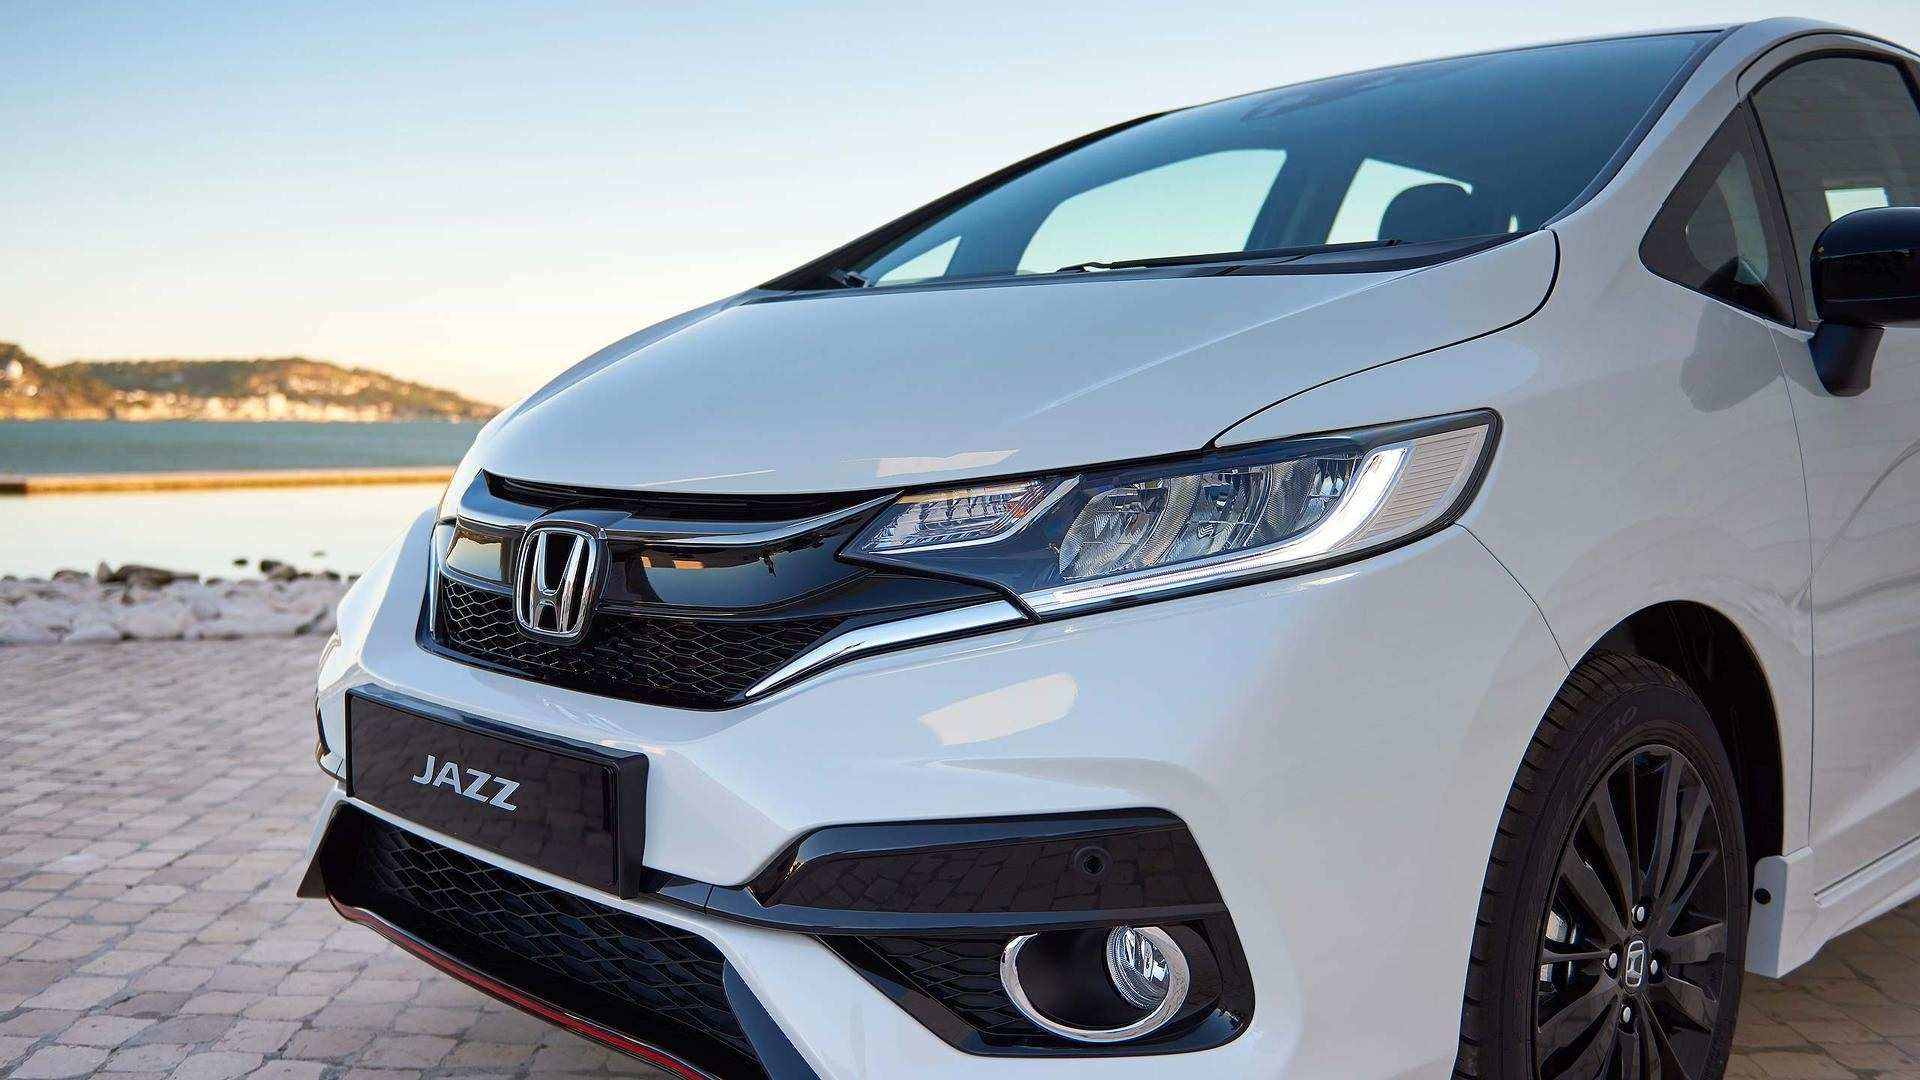 89 Gallery of Best Honda Jazz 2019 Australia First Drive Picture with Best Honda Jazz 2019 Australia First Drive